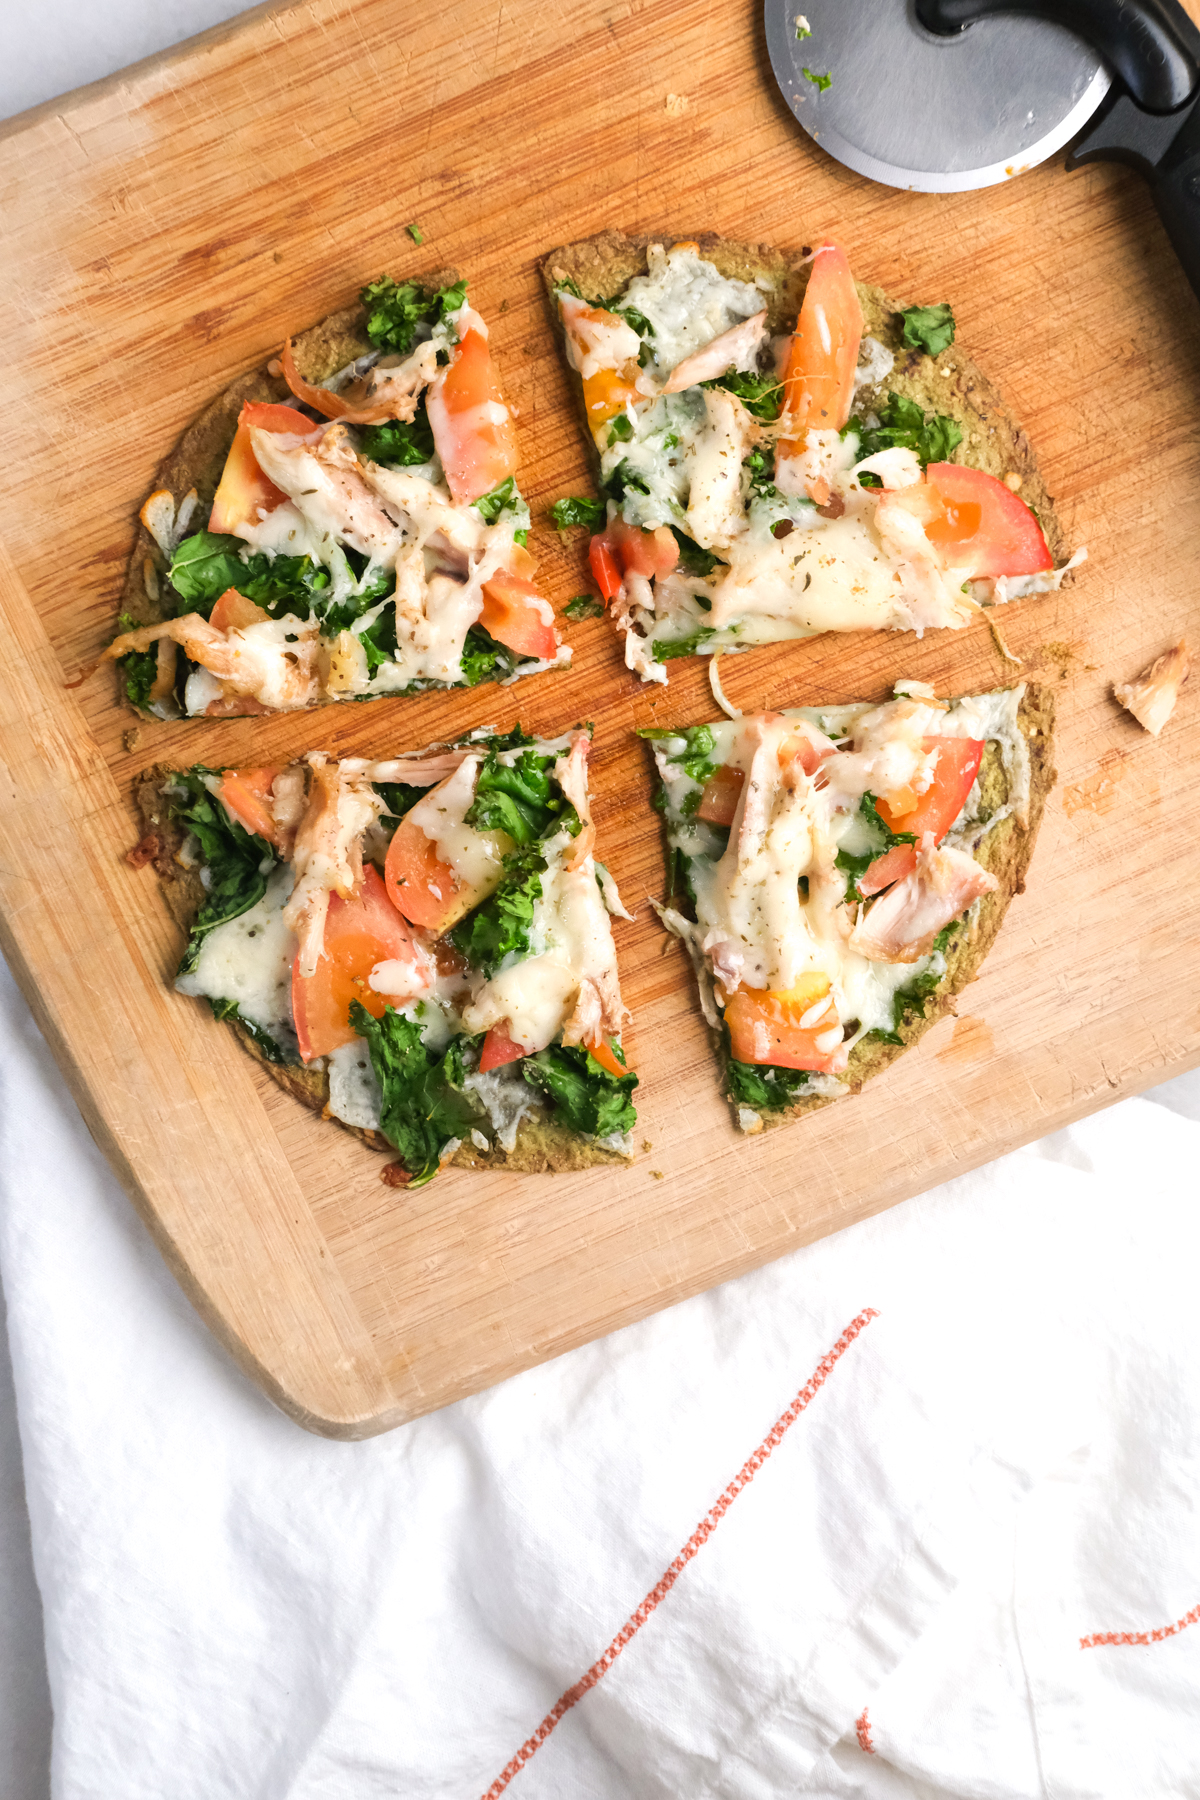 slices of a lunch chicken flatbread with vegetables